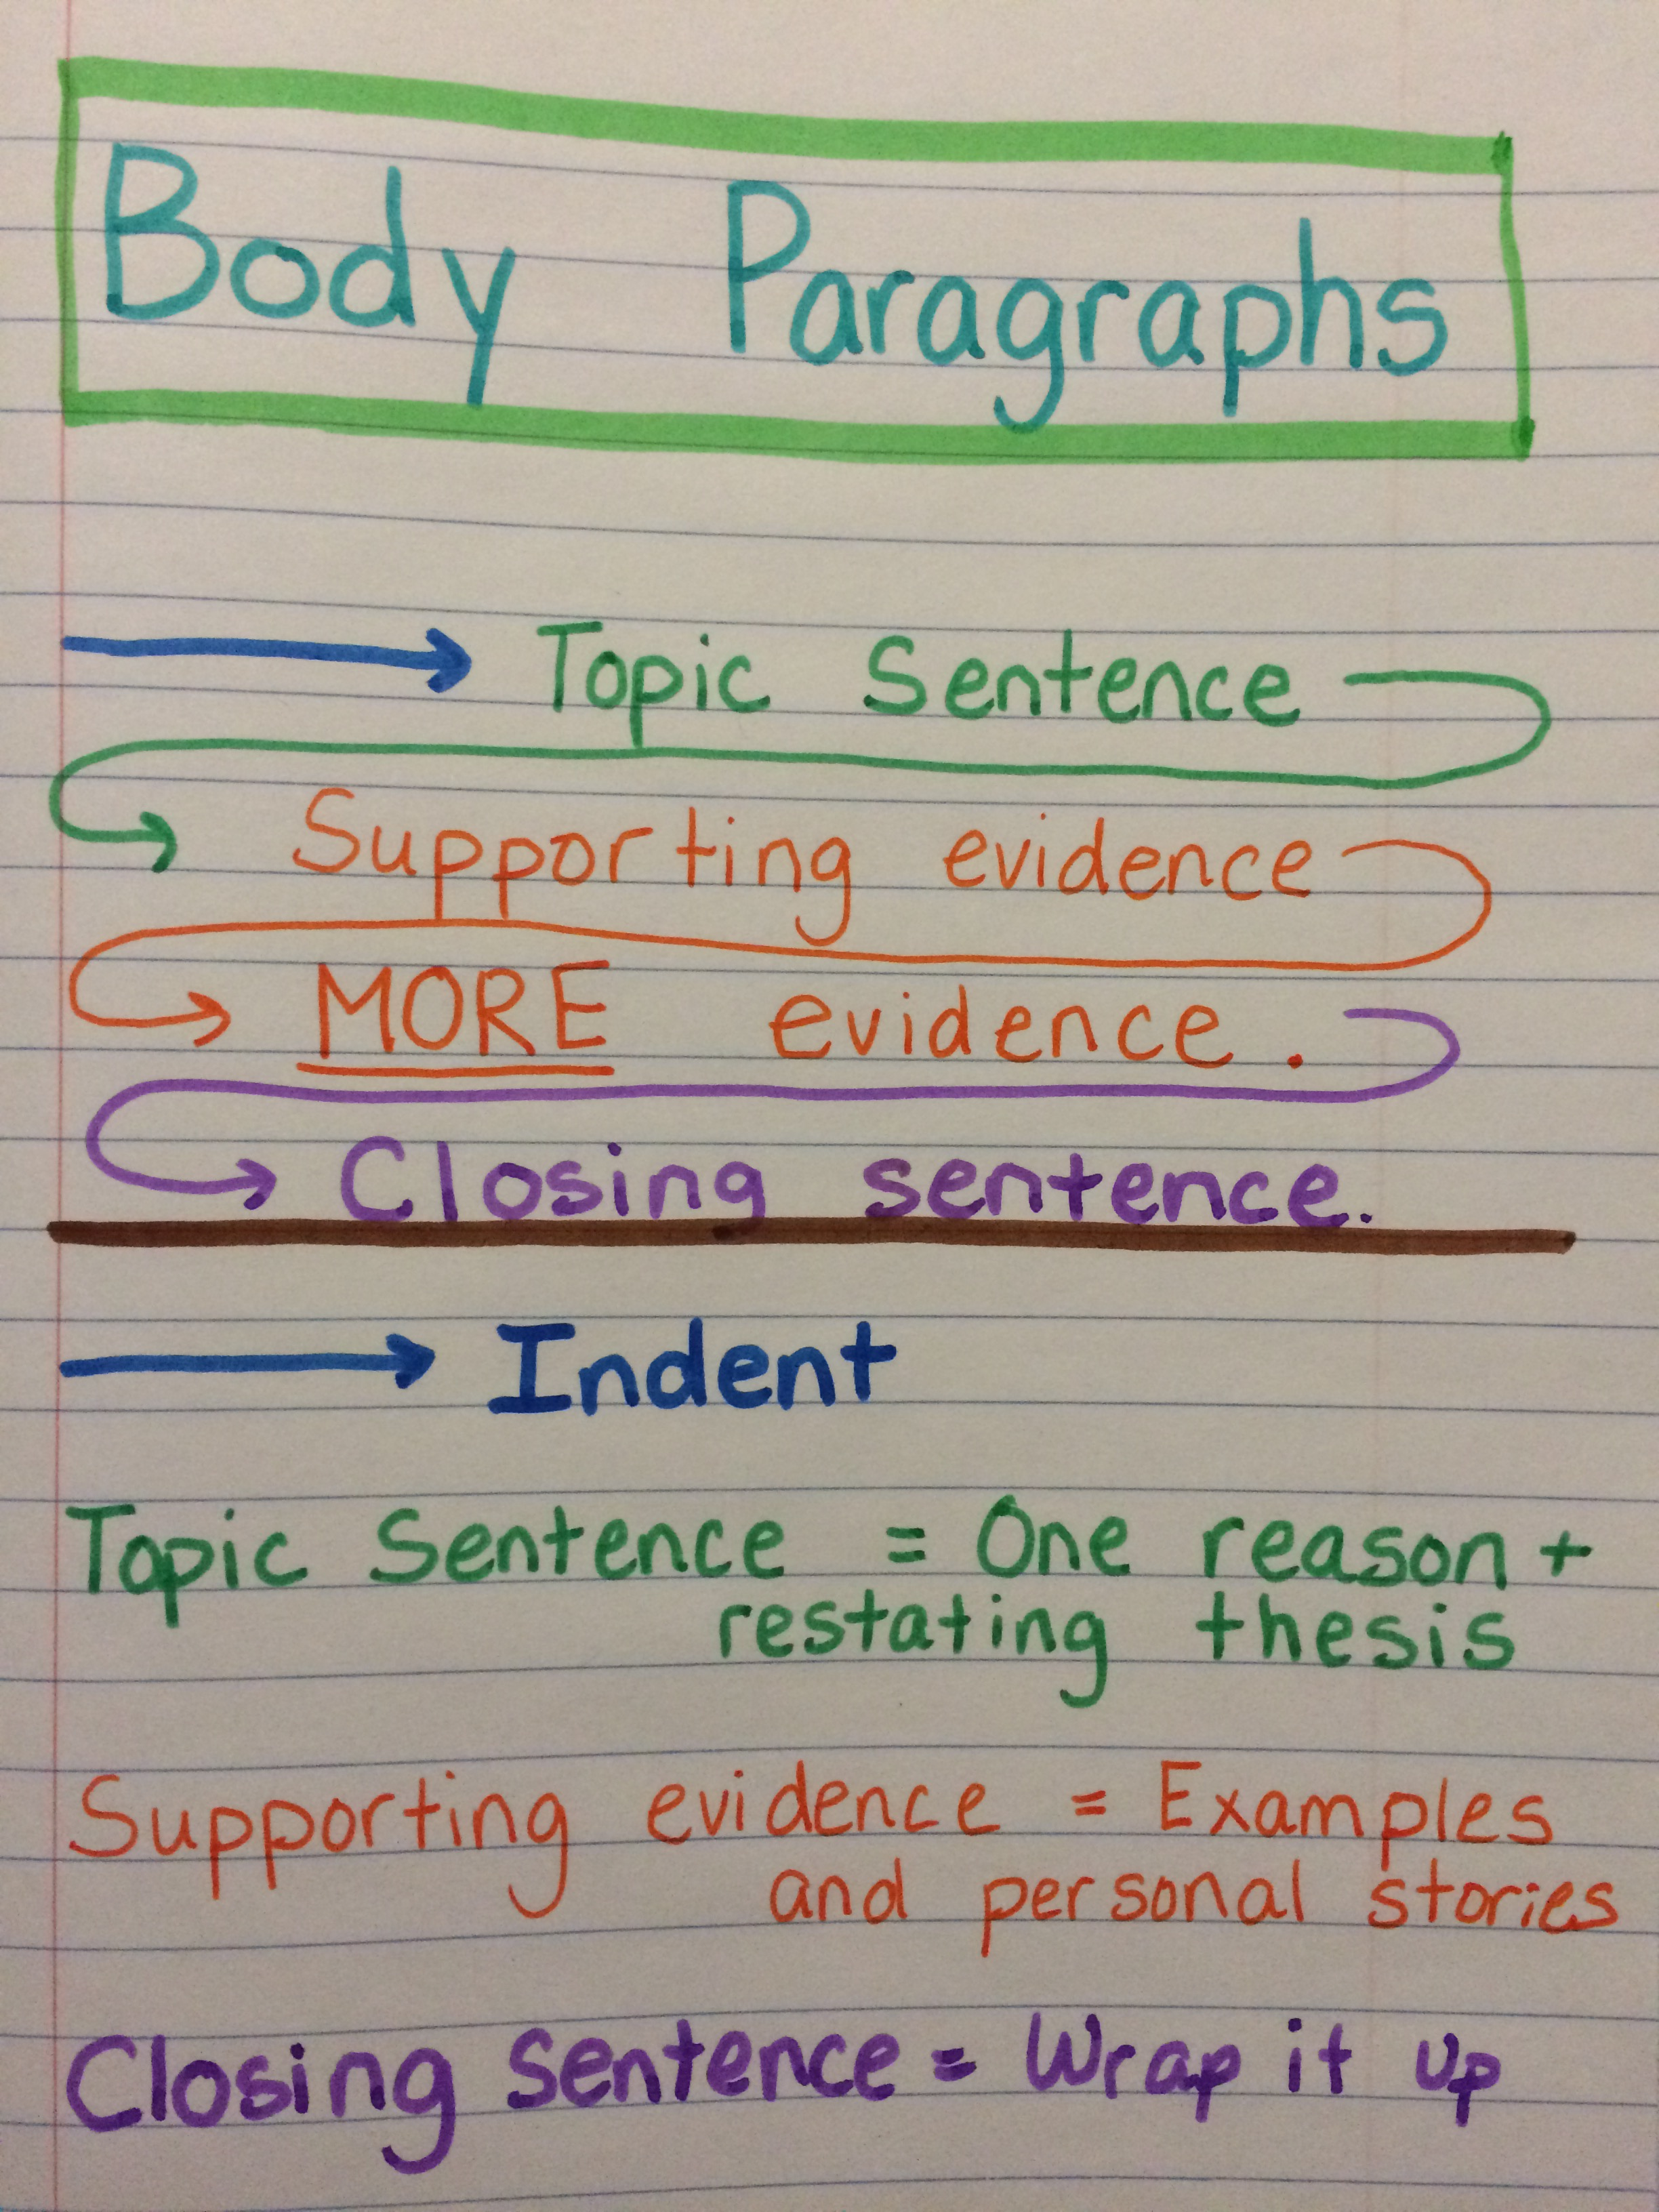 Basics of essay writing - Body